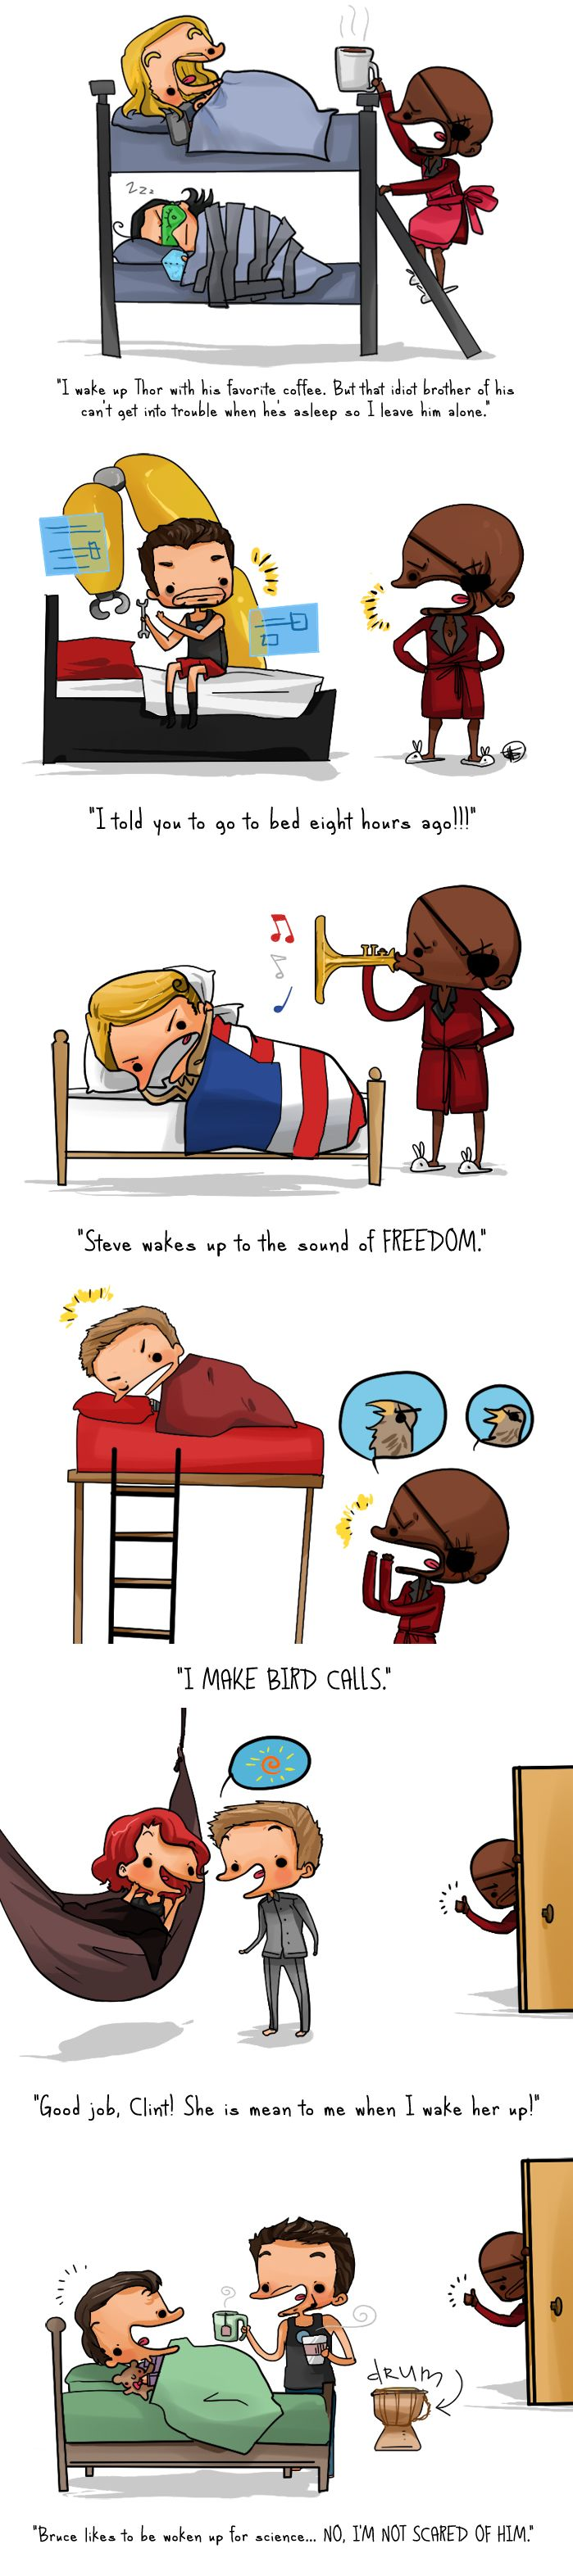 Nick Fury waking up the Avengers. Steve woke up to the sound of FREEDOM, this is hilarious.